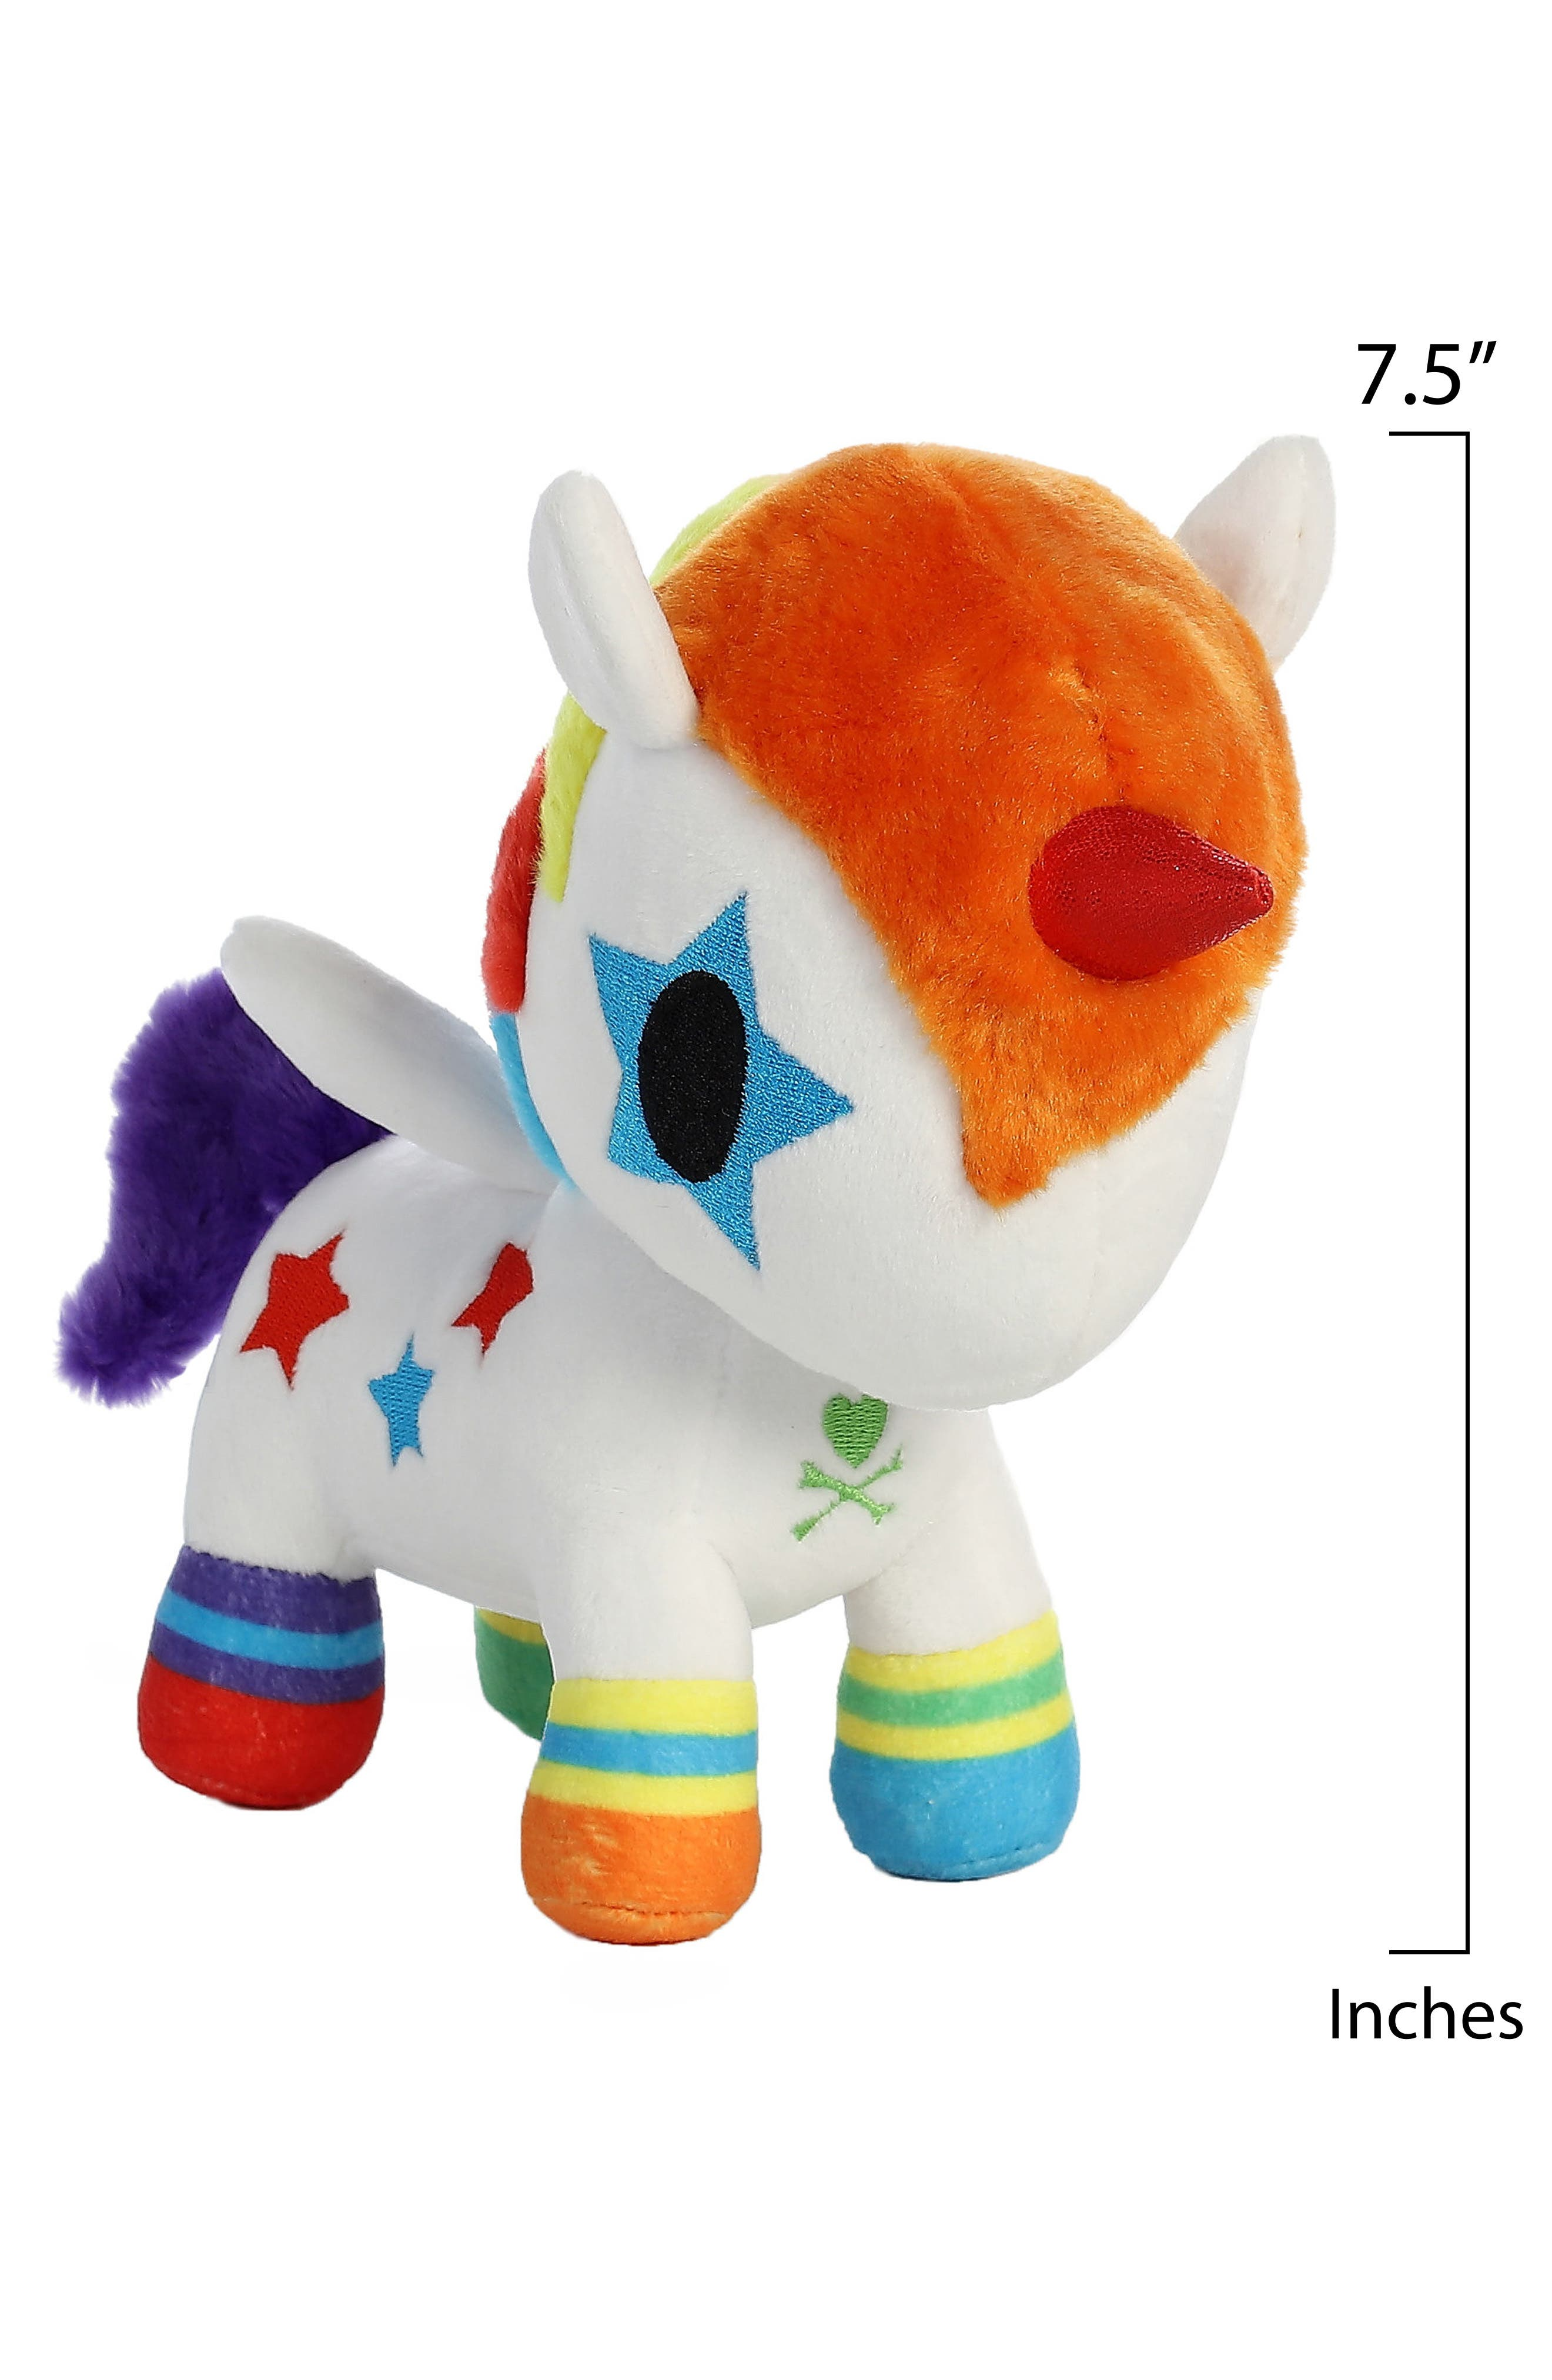 x tokidoki Bowie Unicorno Stuffed Animal,                             Alternate thumbnail 3, color,                             Orange